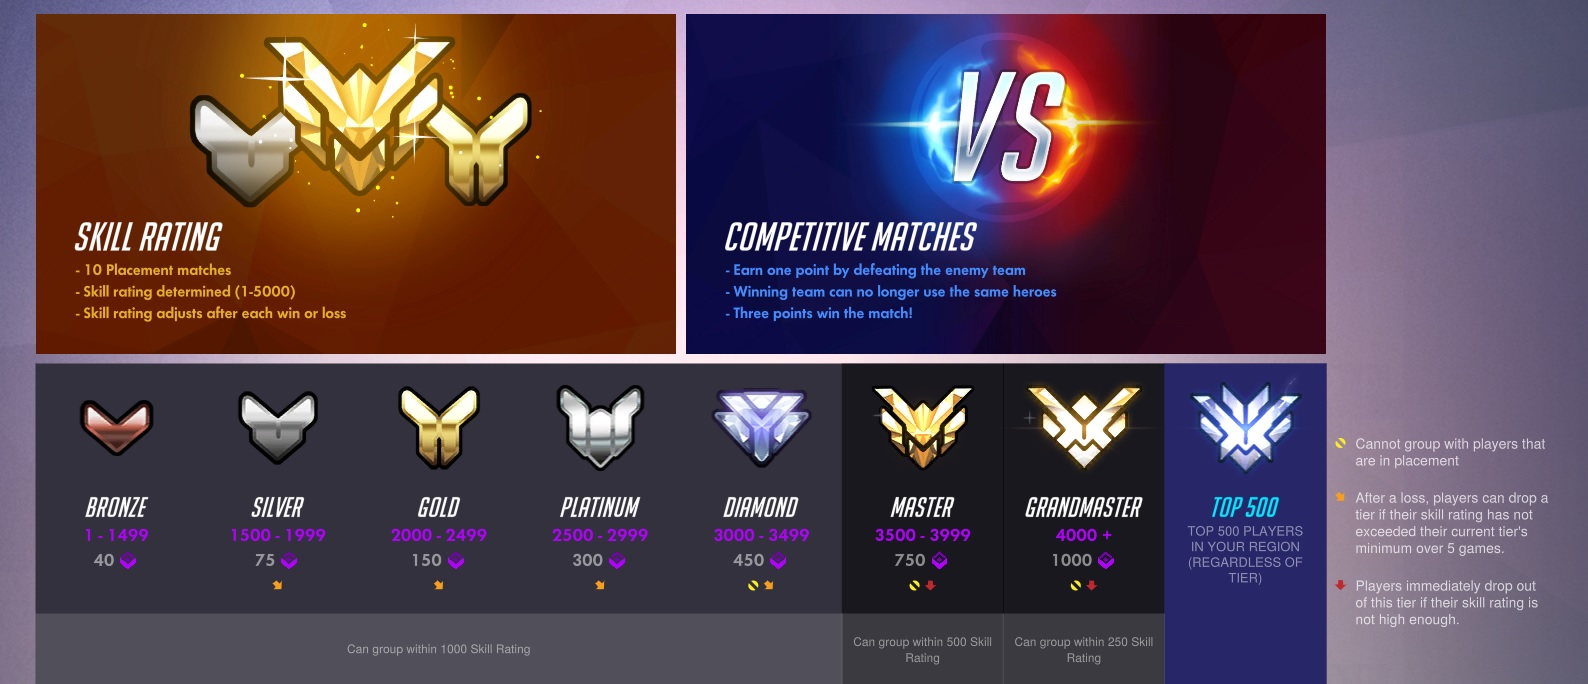 Overwatch Comp 6v6 ranks